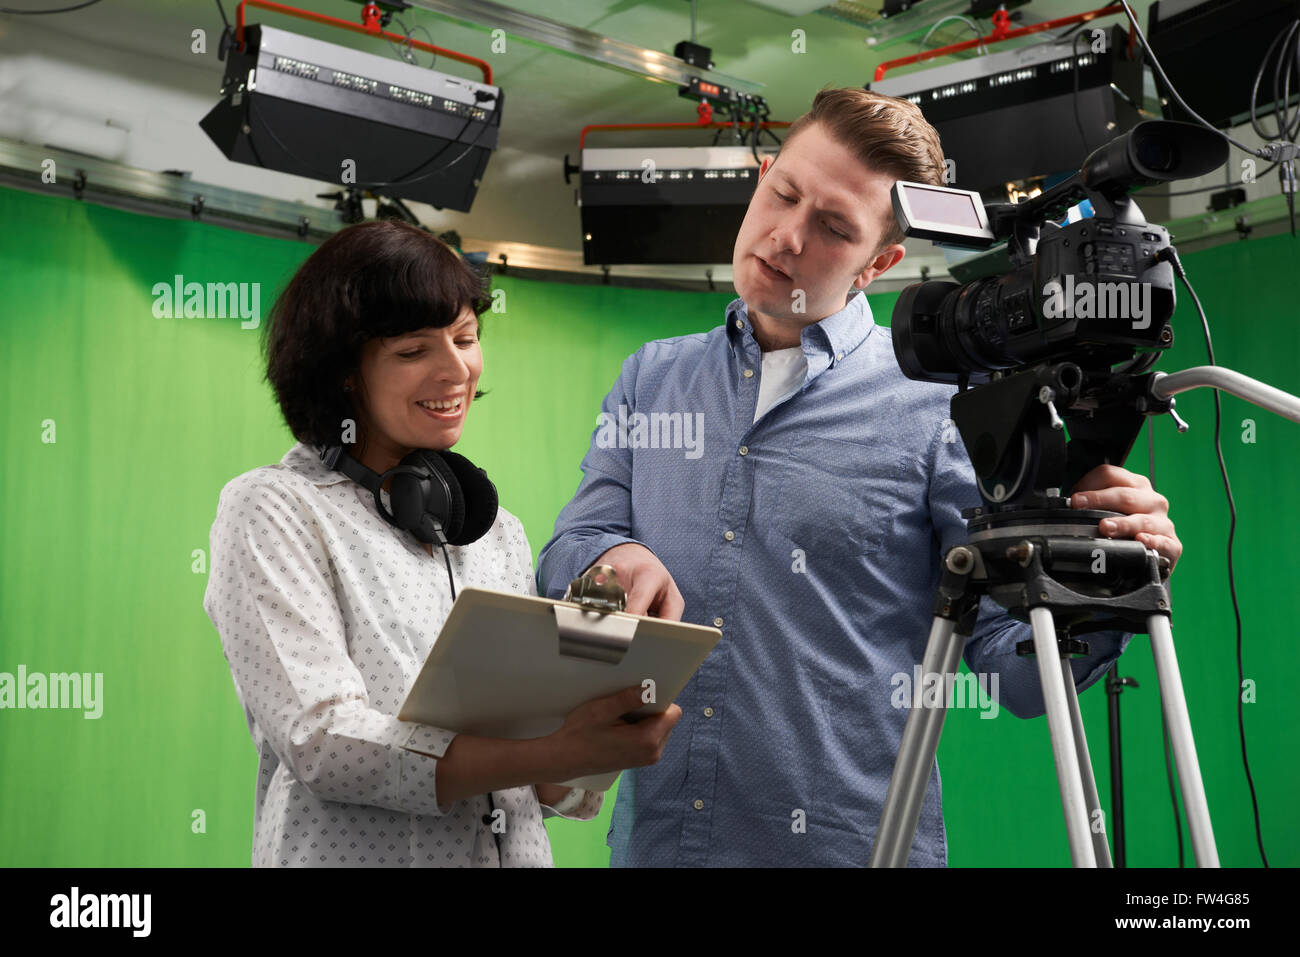 Cameraman And Floor Manager In Television Studio - Stock Image